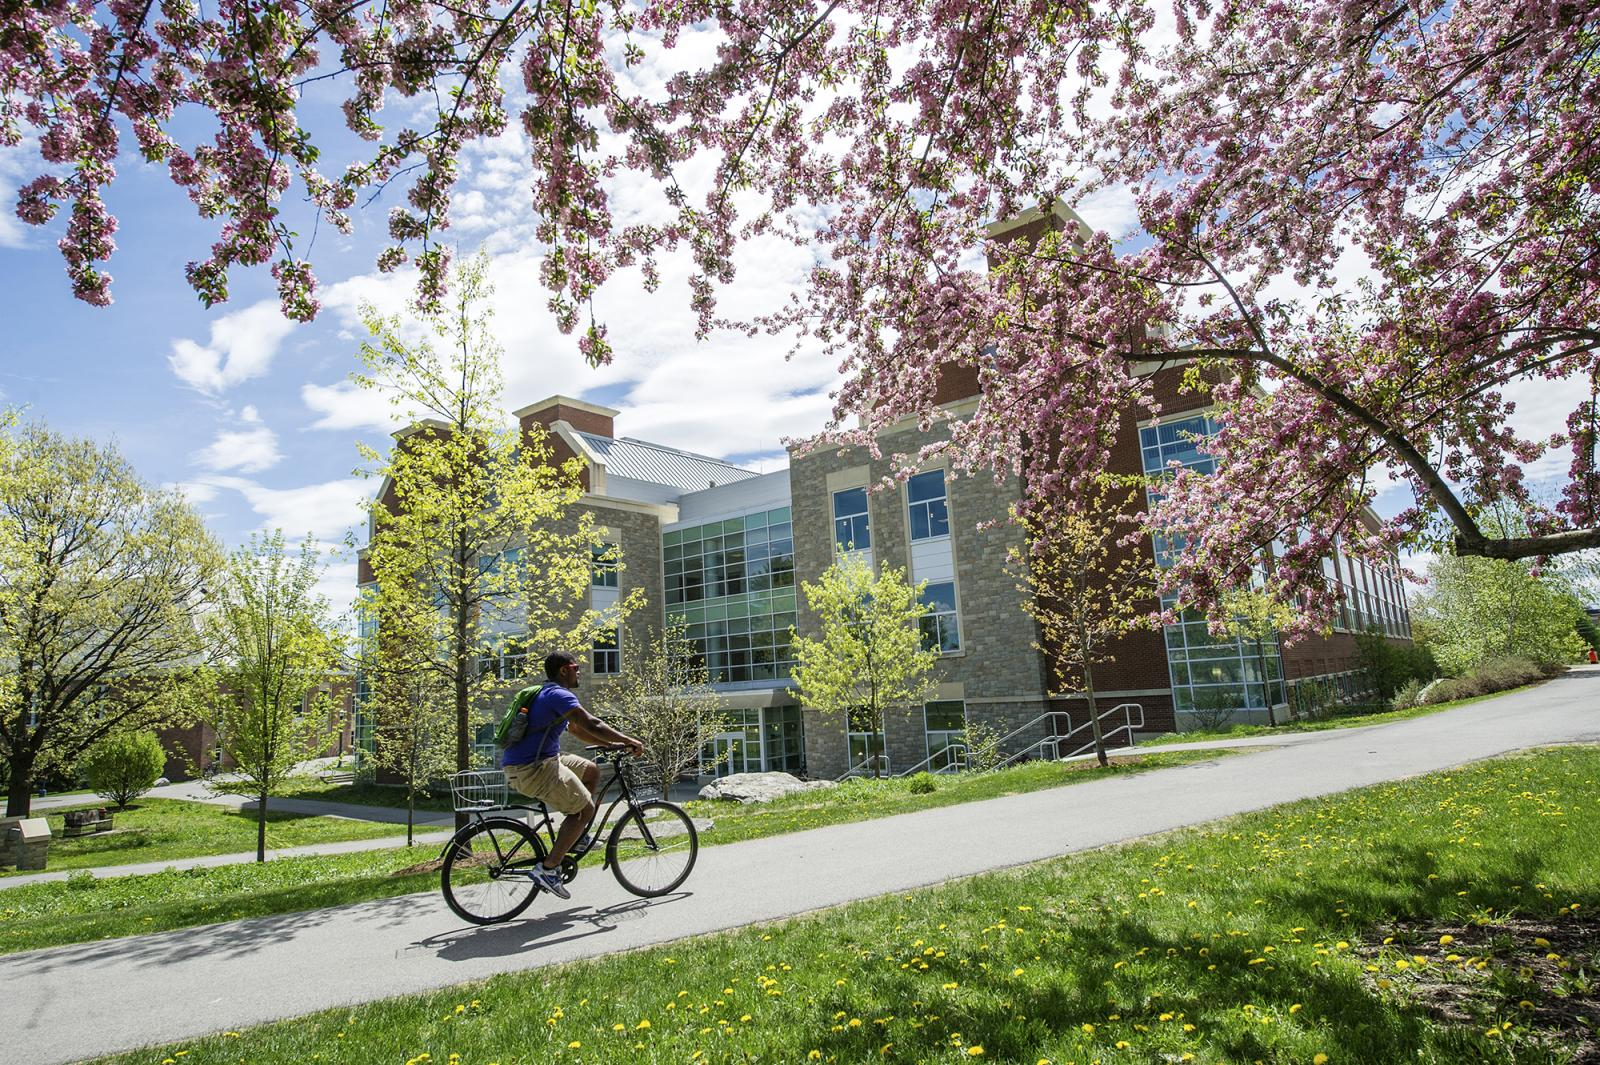 Promoting and enhancing use of bicycles on campus through the Fix It and Go! program funded in 2013 has had lasting impact.